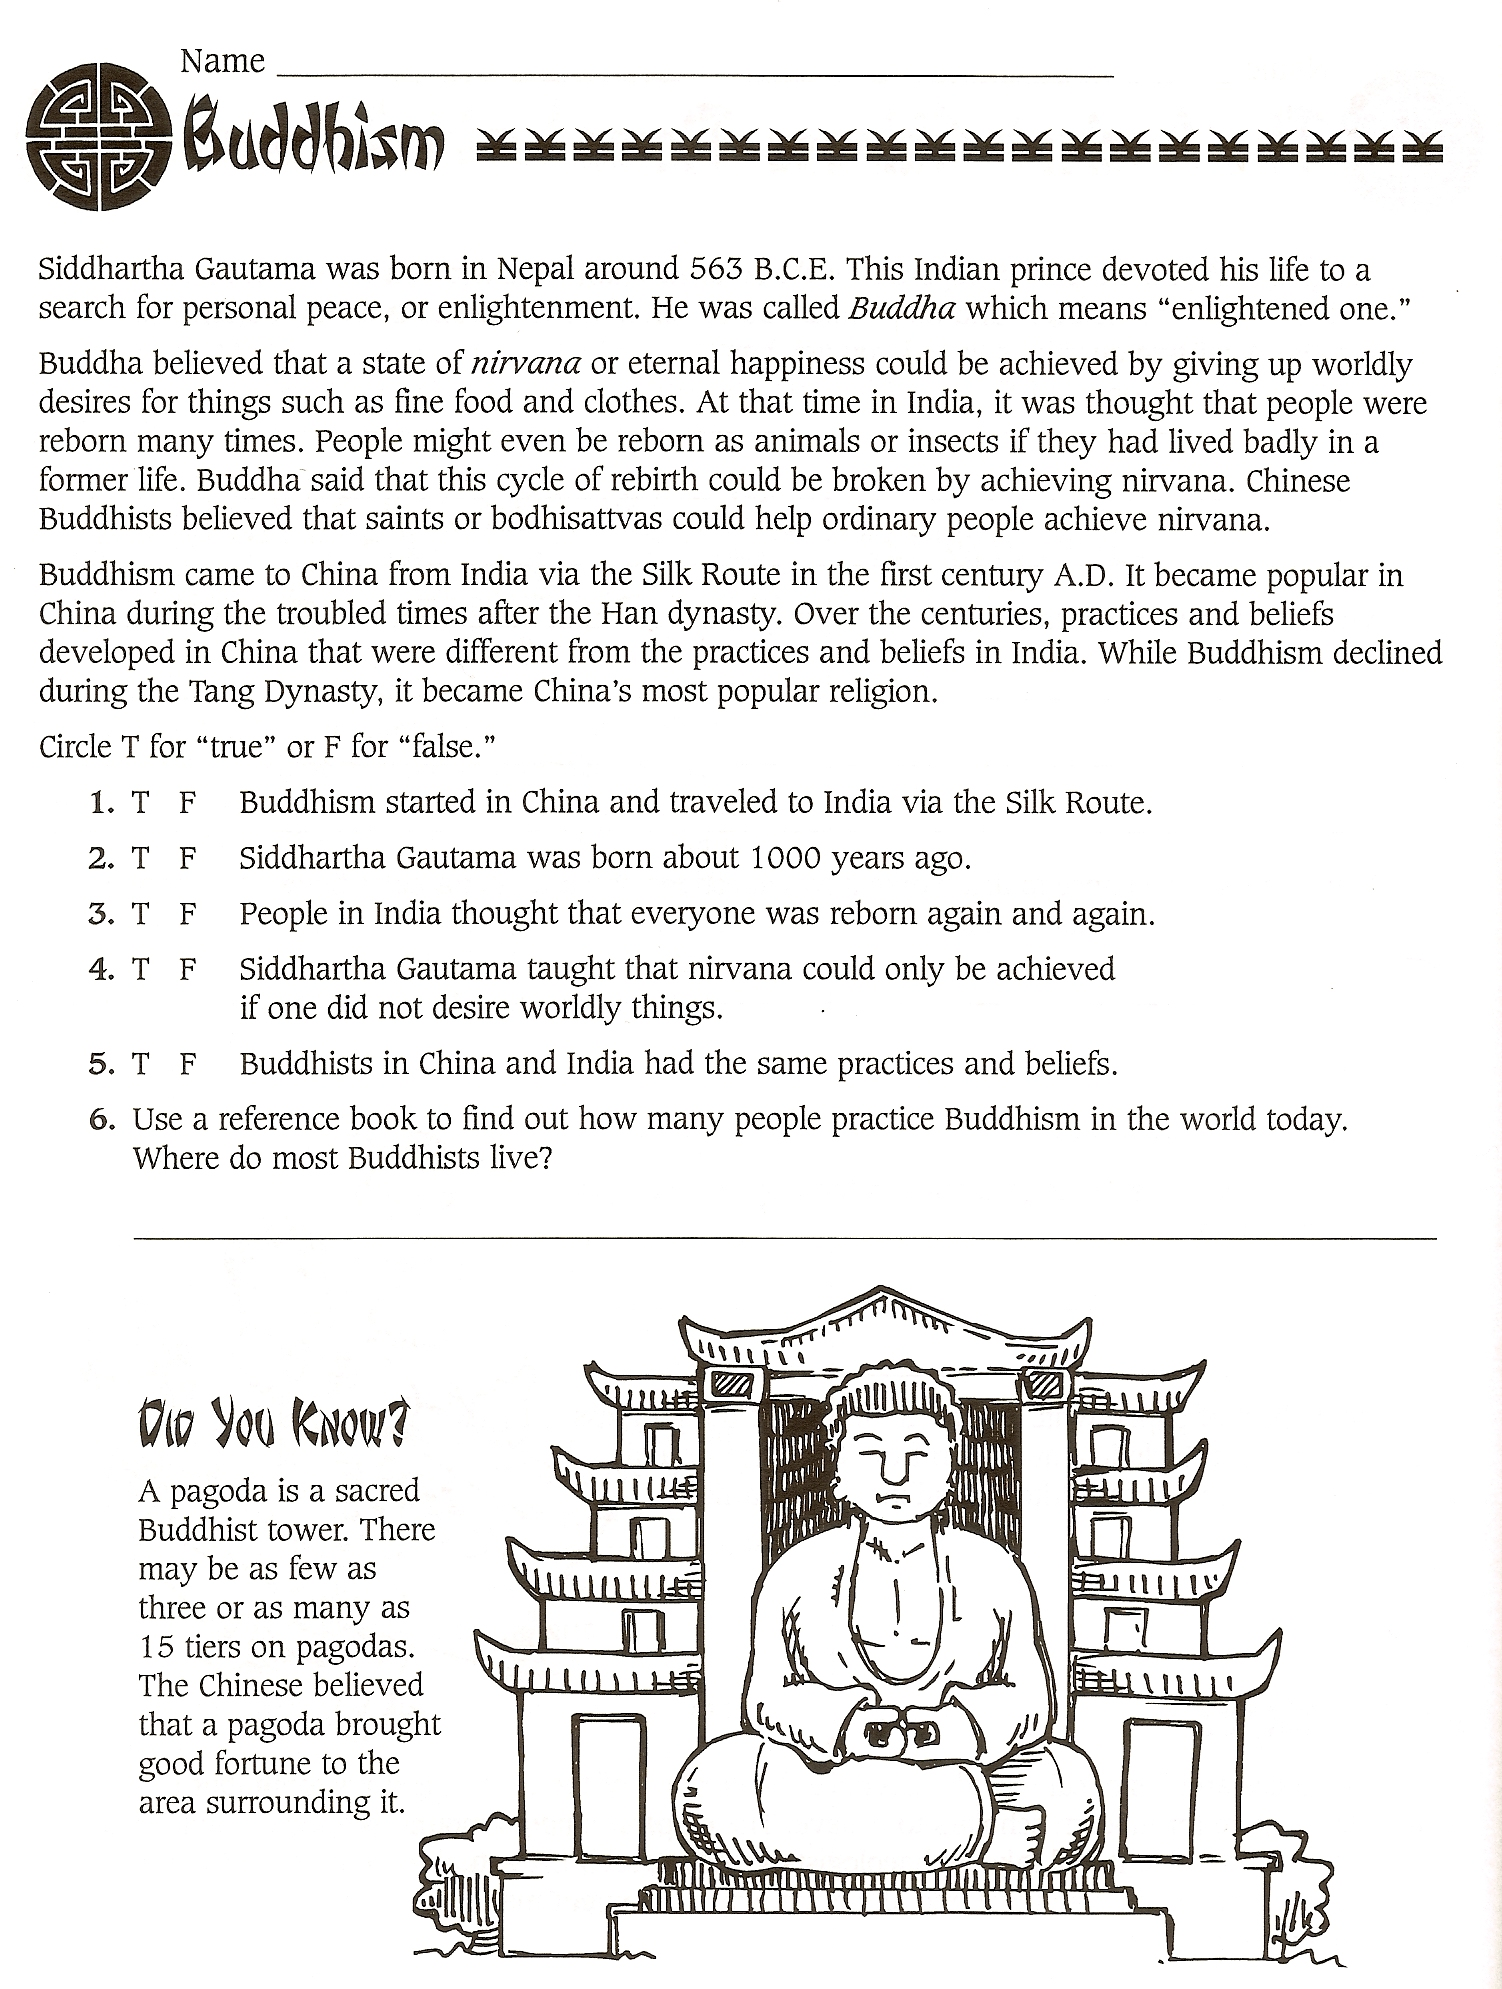 Buddhism Worksheet 6th Grade